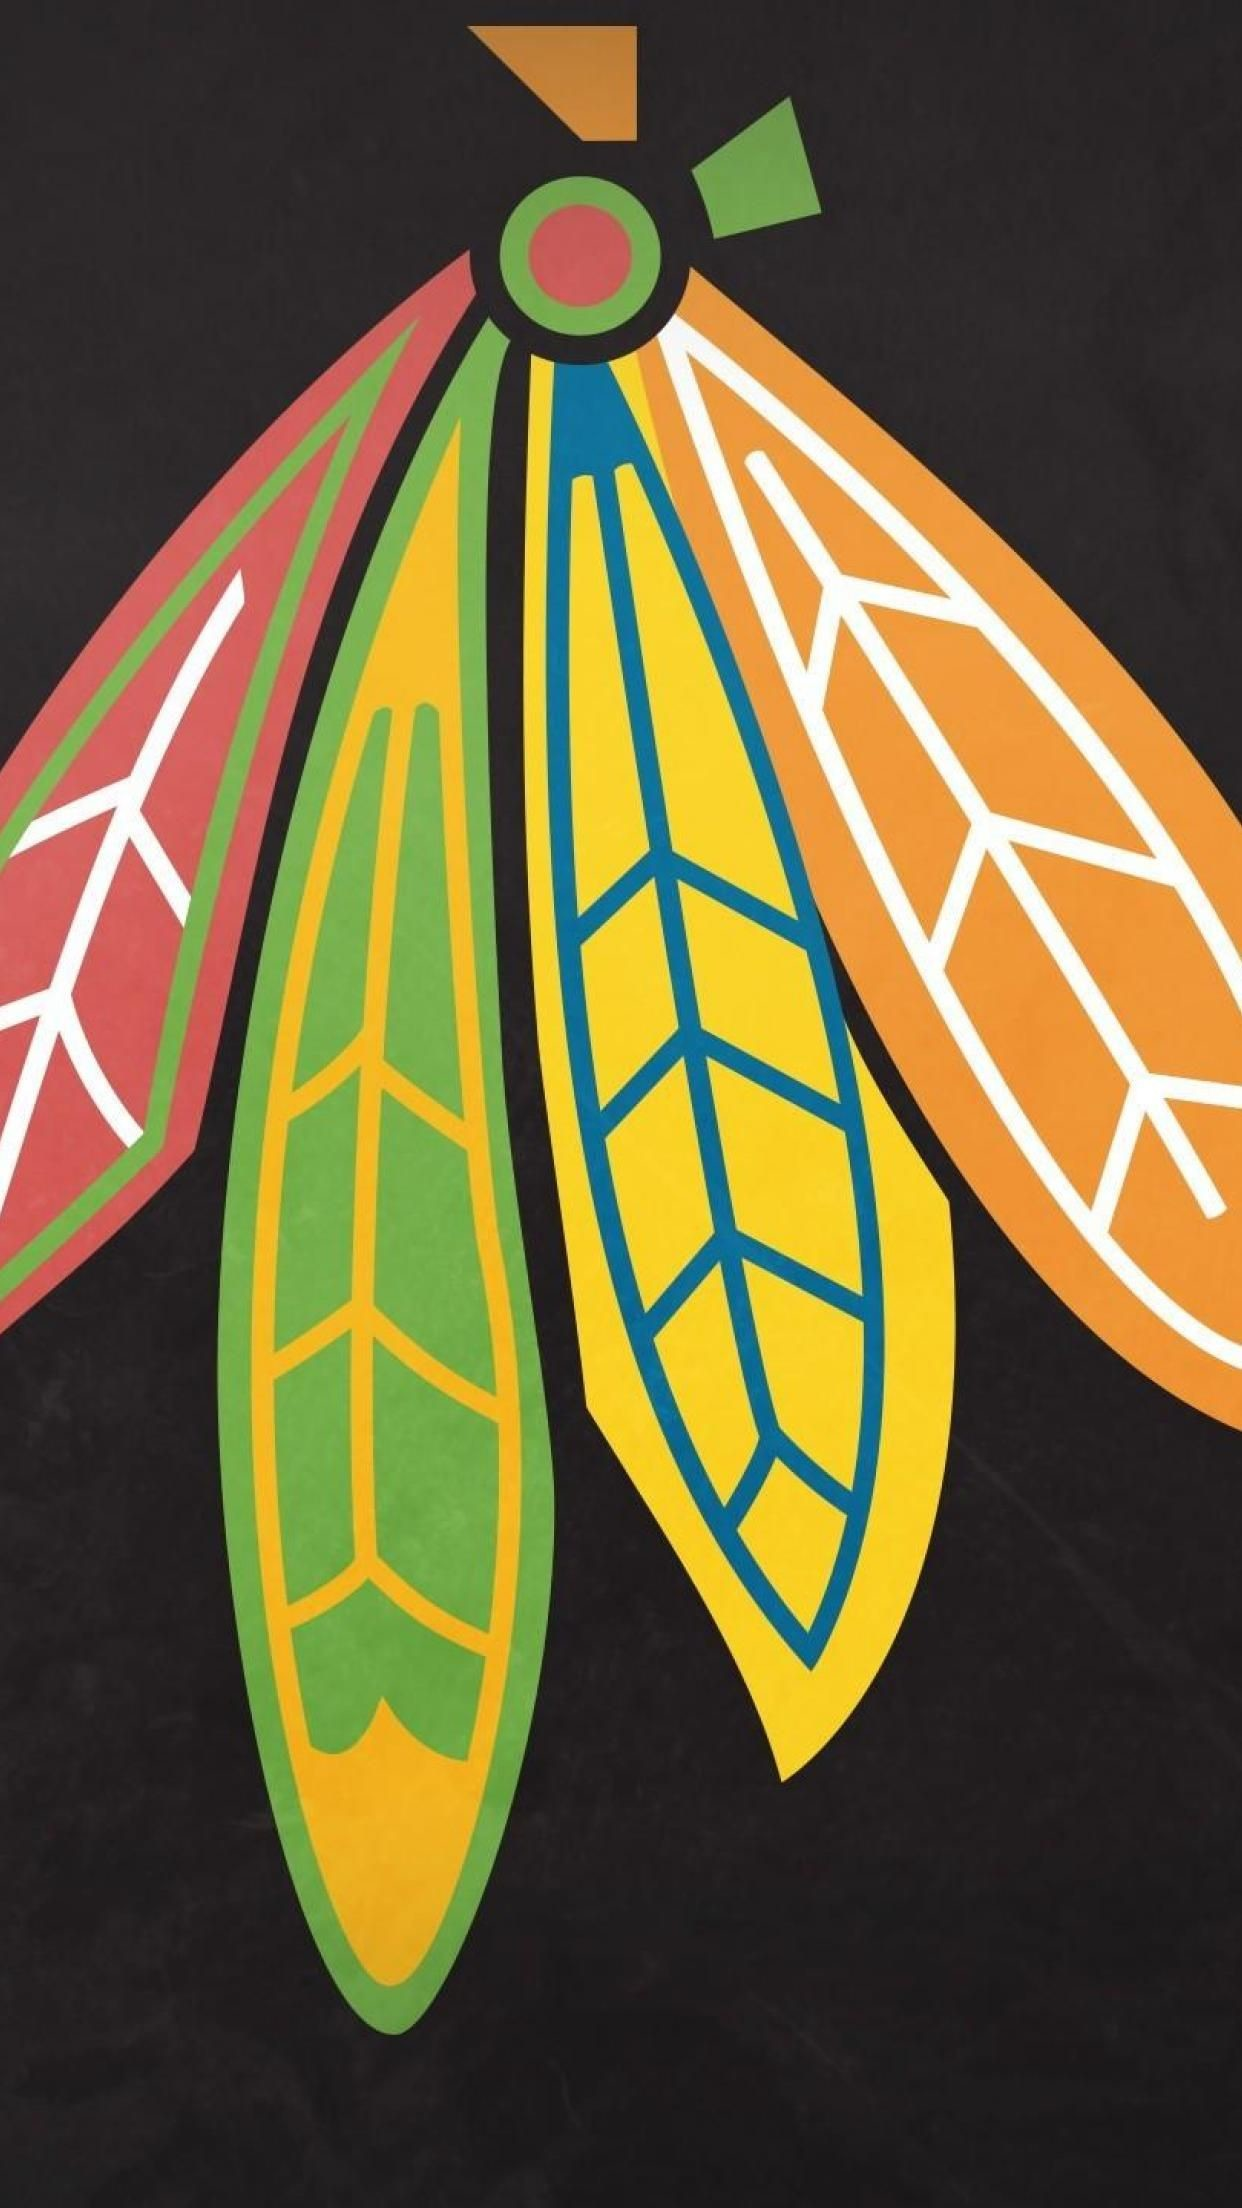 blackhawks iphone wallpaper nhl mascot wallpapers 76 images 10284